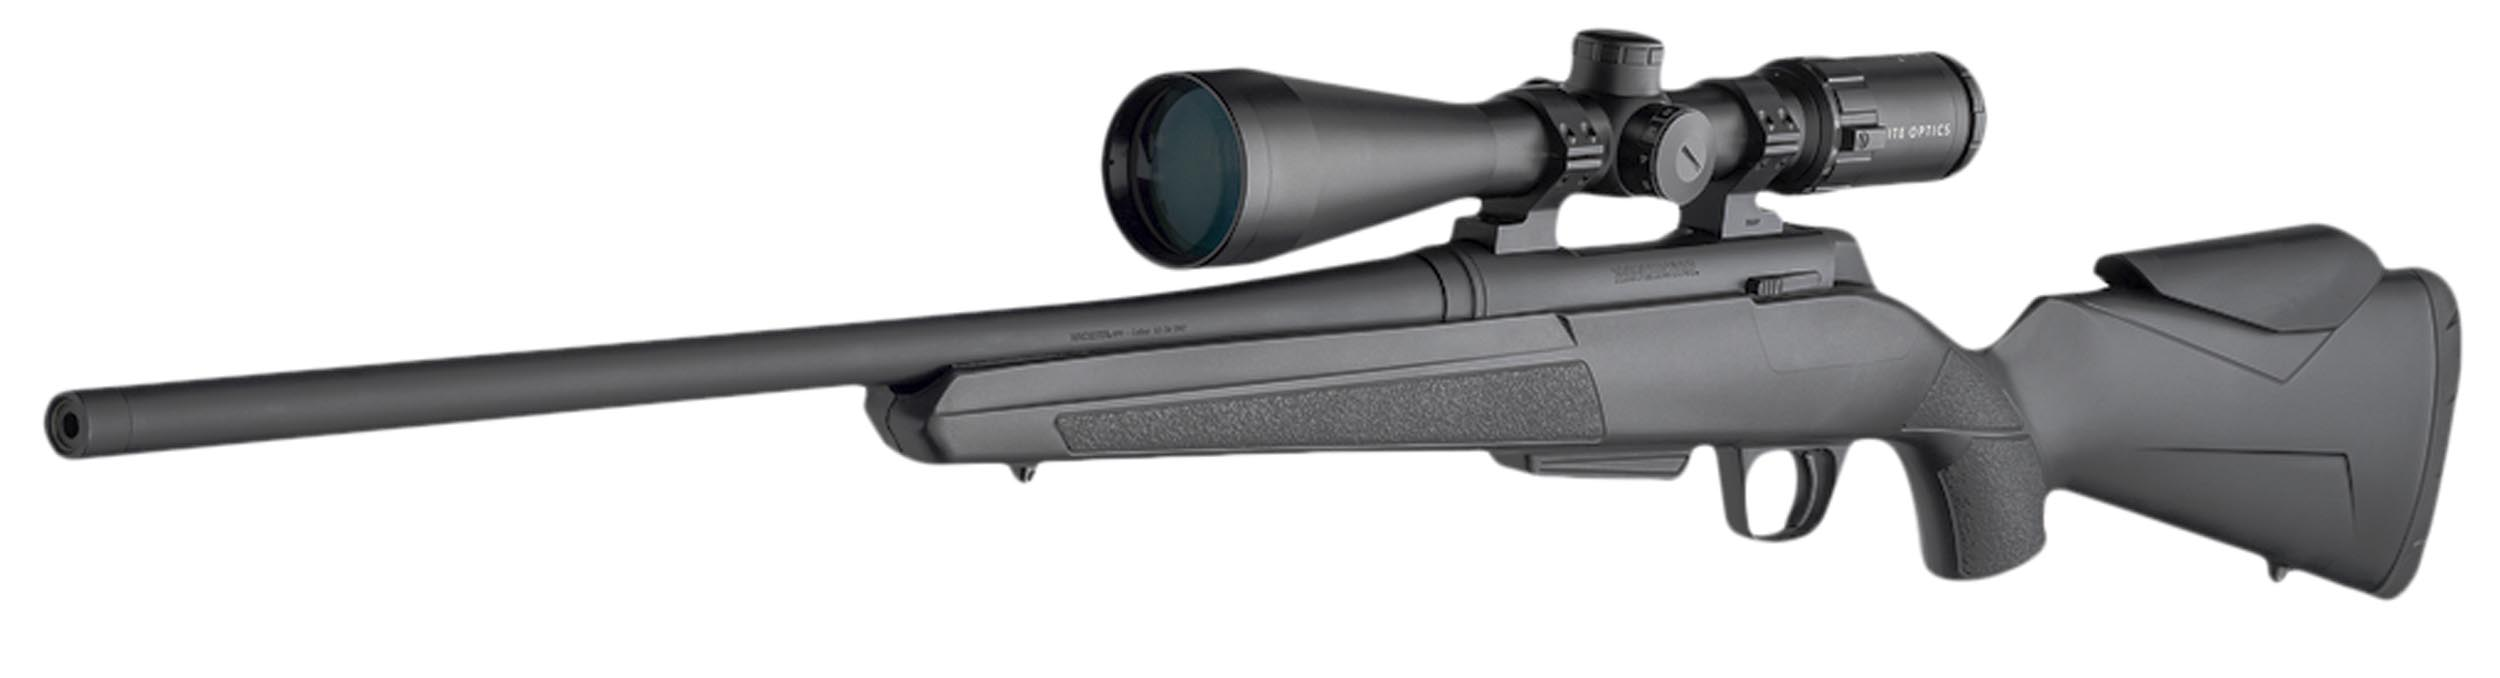 BRO9181-04 Carabine XPR Varmint crosse synthétique réglable - Threaded - BRO9181